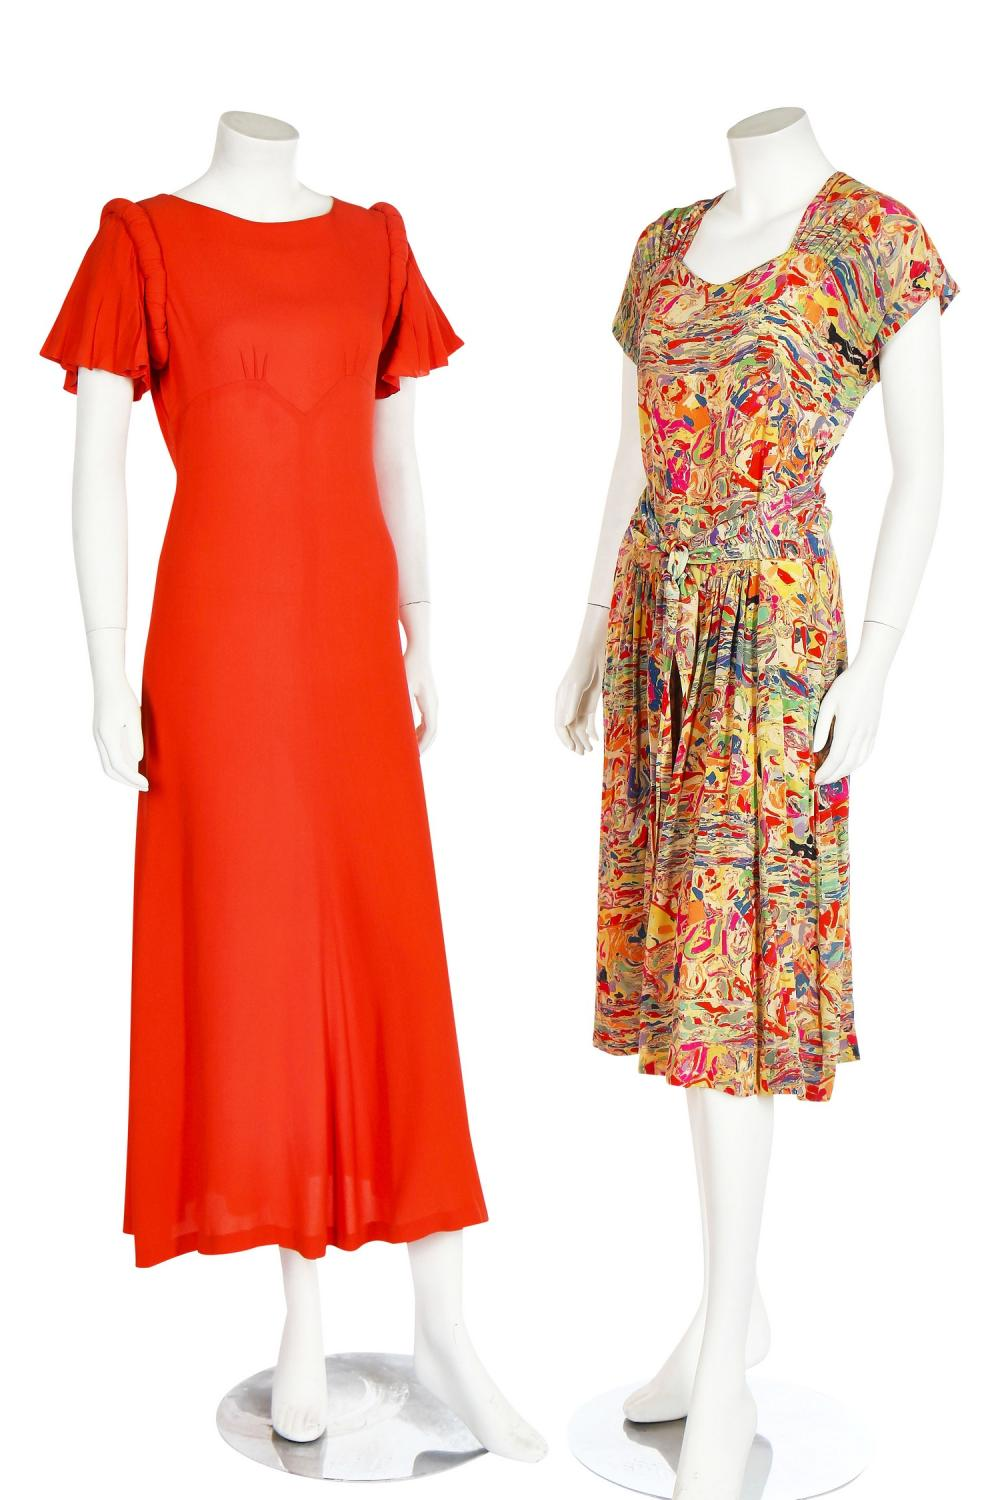 Eight dresses, mainly in shades of burnt-orange and black, 1940s,